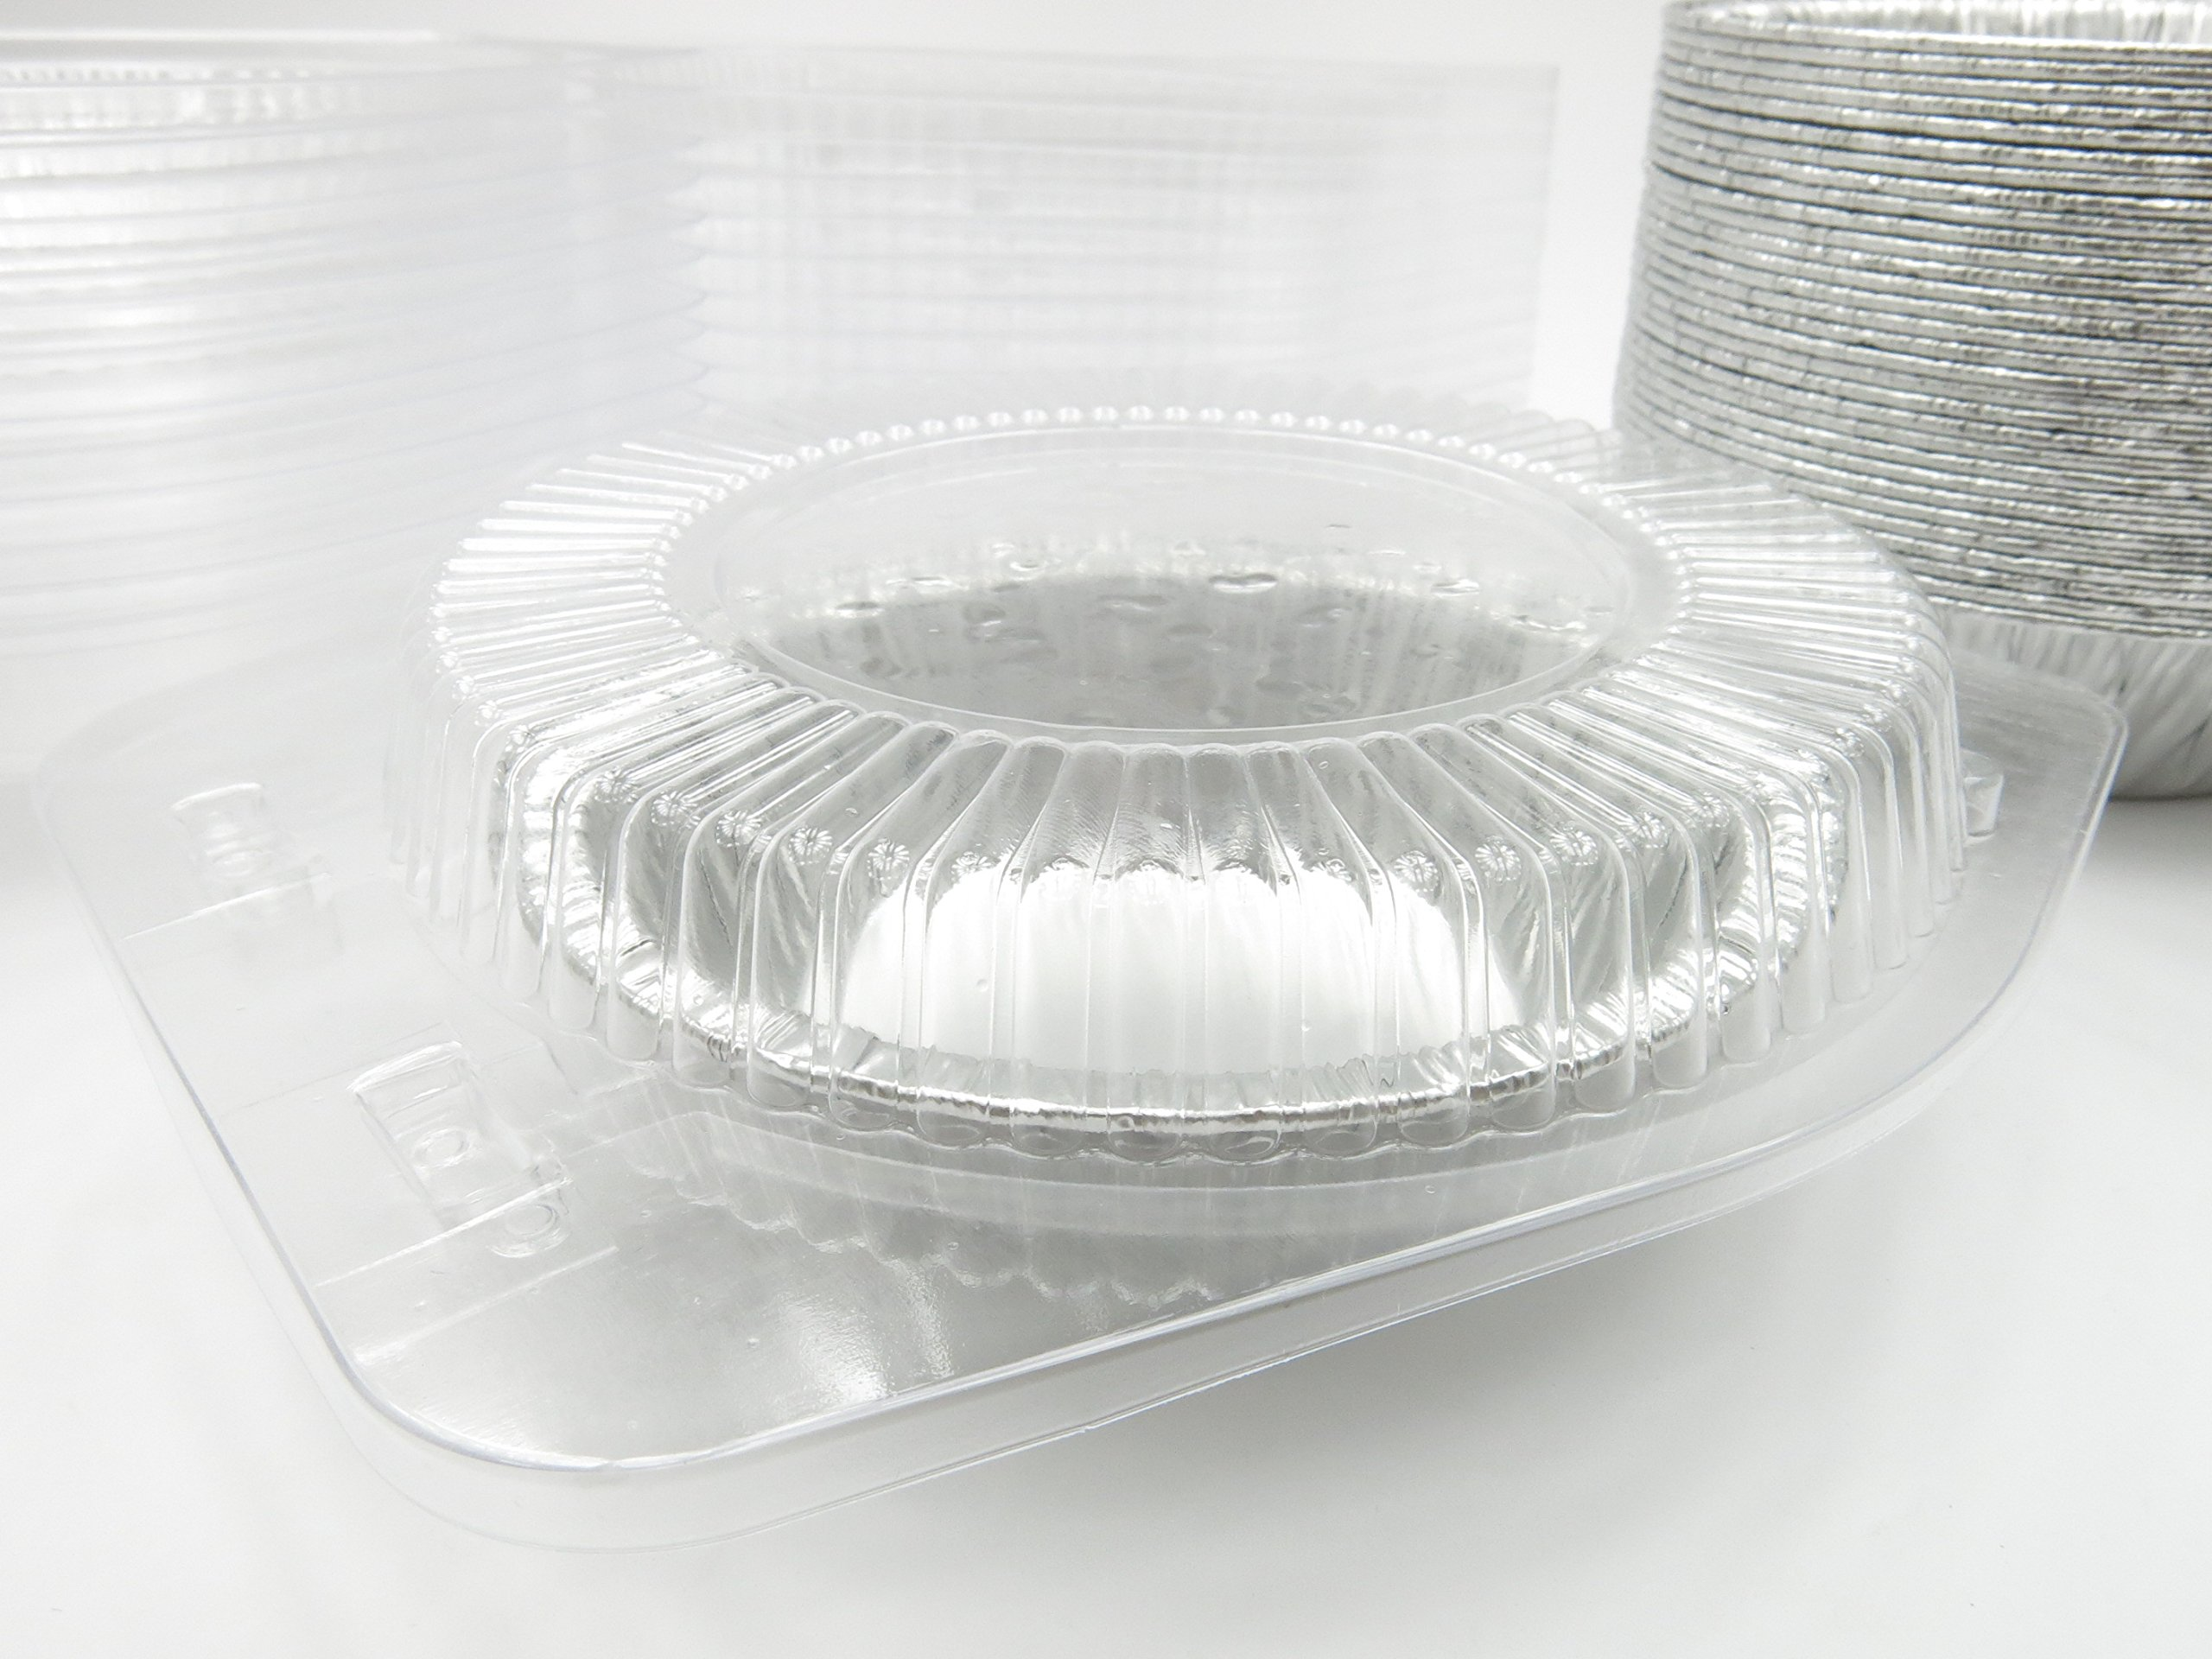 5'' Disposable Pot Pie/Pie Pans/Individual Dessert Pans With Clear Clamshell containers- Quantity Pack Options (100) by Safca (Image #2)